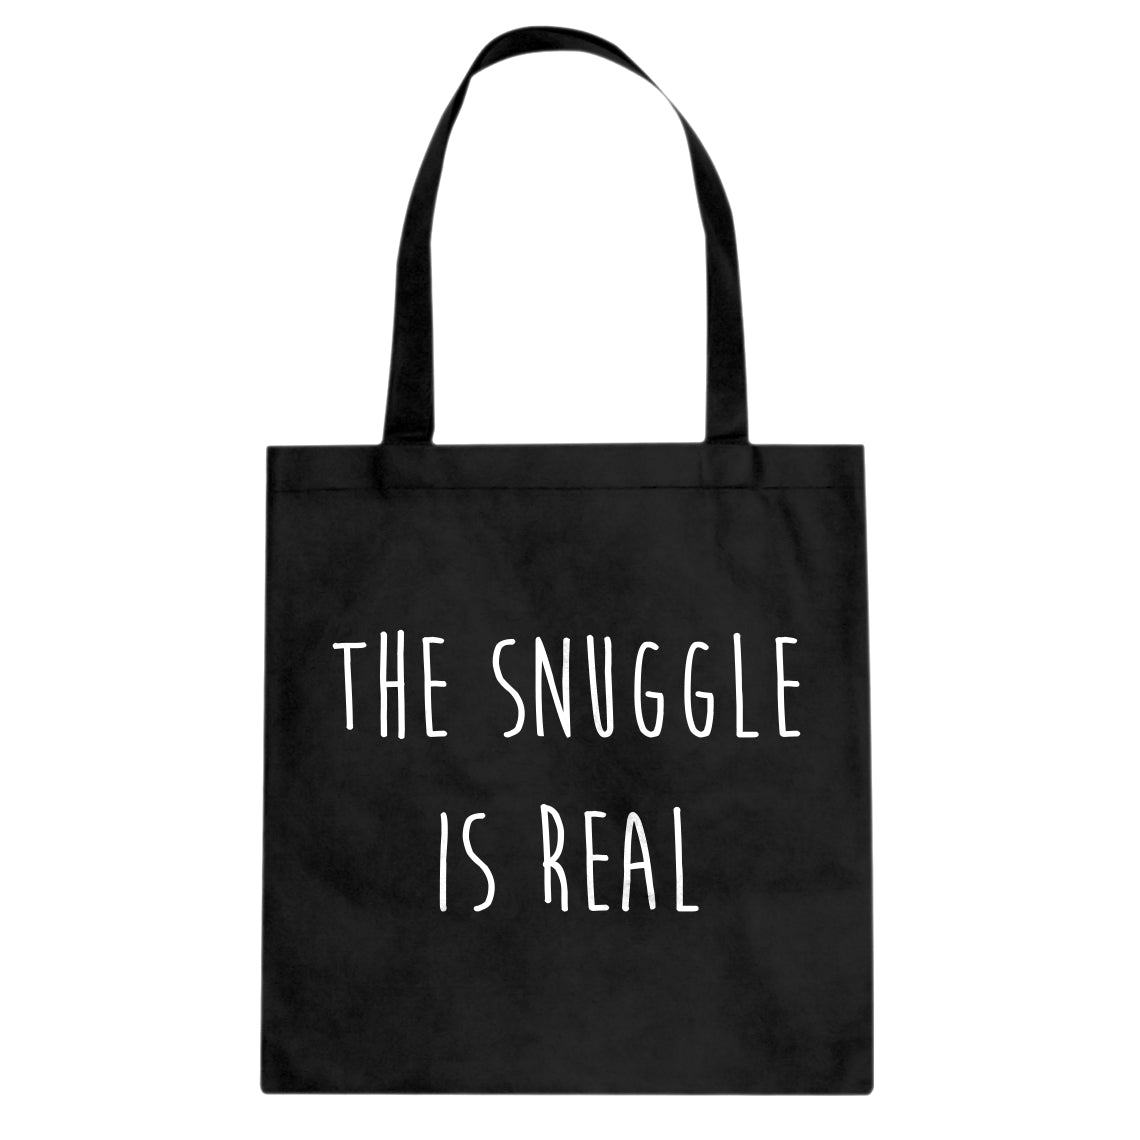 The Snuggle is Real Cotton Canvas Tote Bag